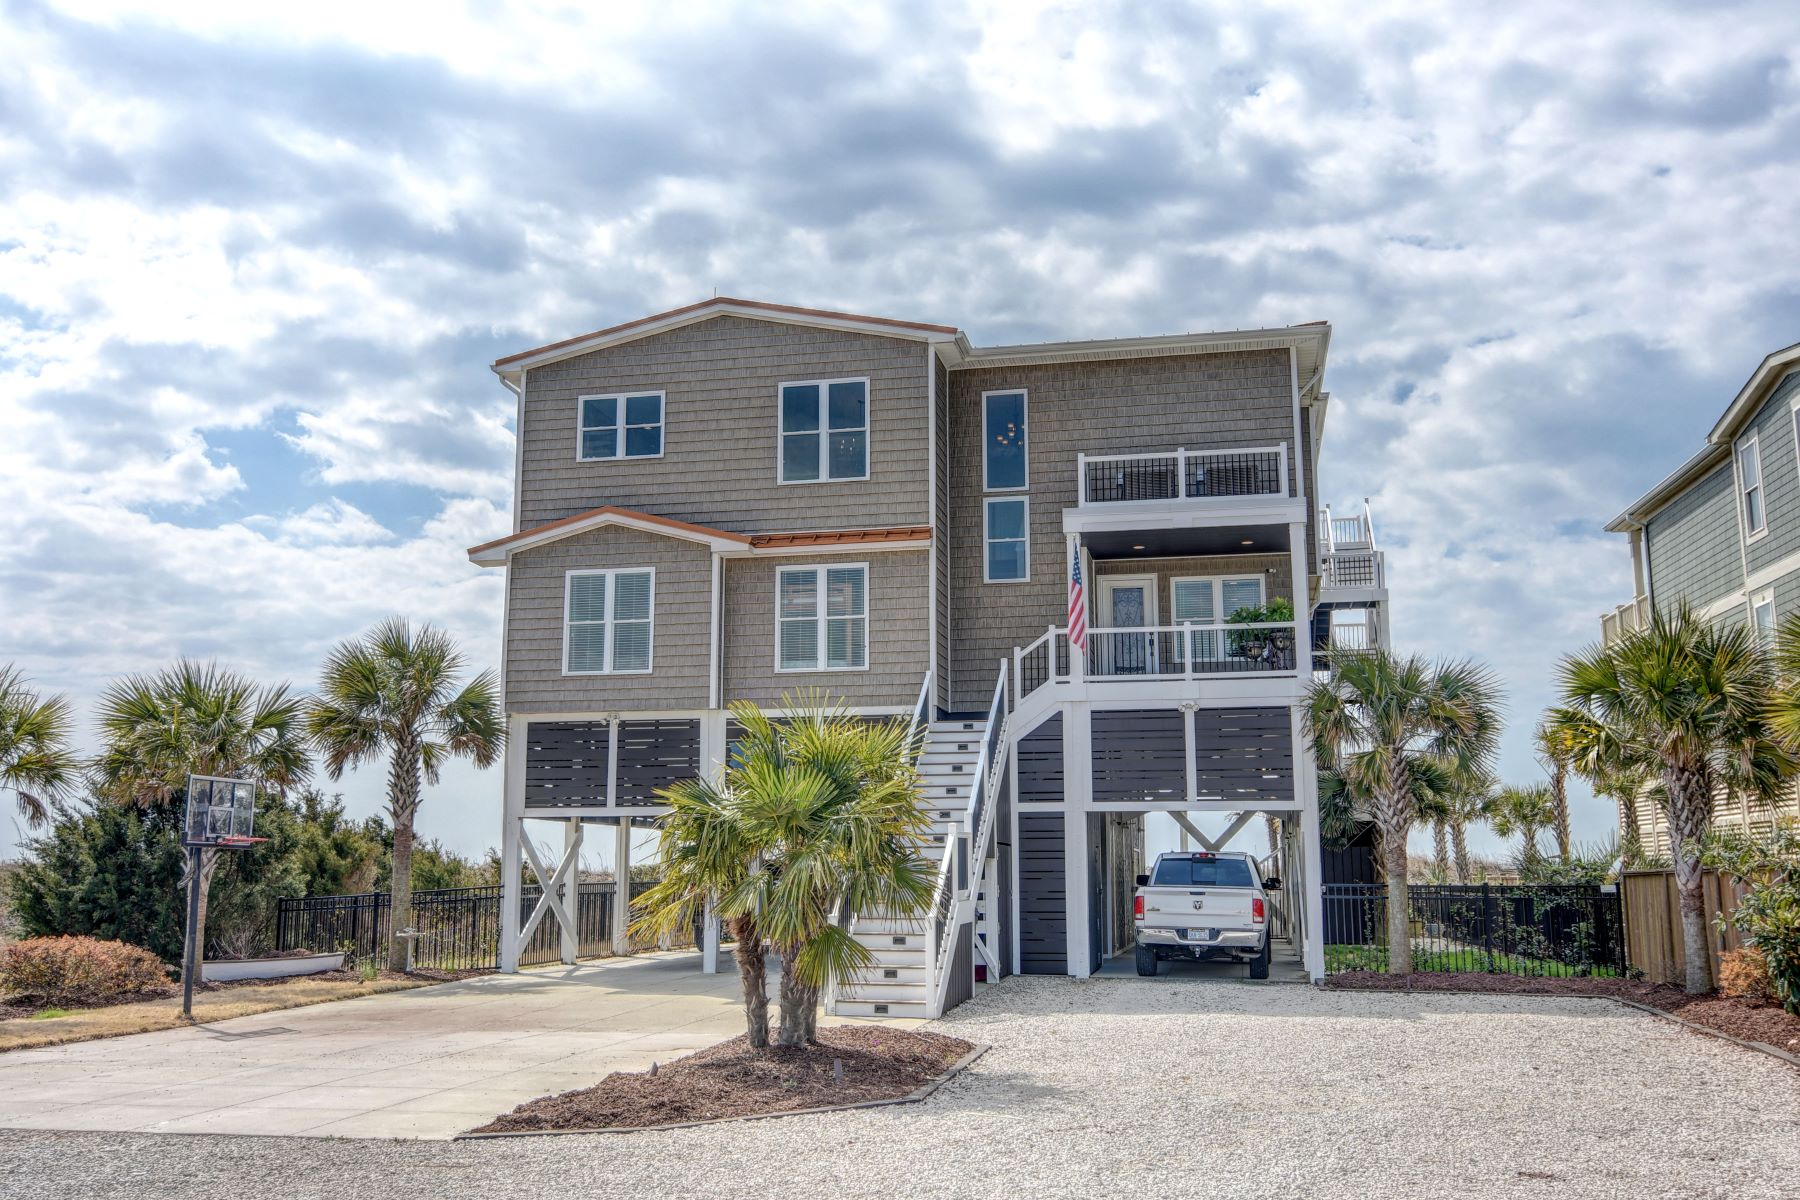 Single Family Home for Sale at Oceanfront Perfect Serenity In Gated Community 1353 Ocean Boulevard W Holden Beach, North Carolina 28462 United States